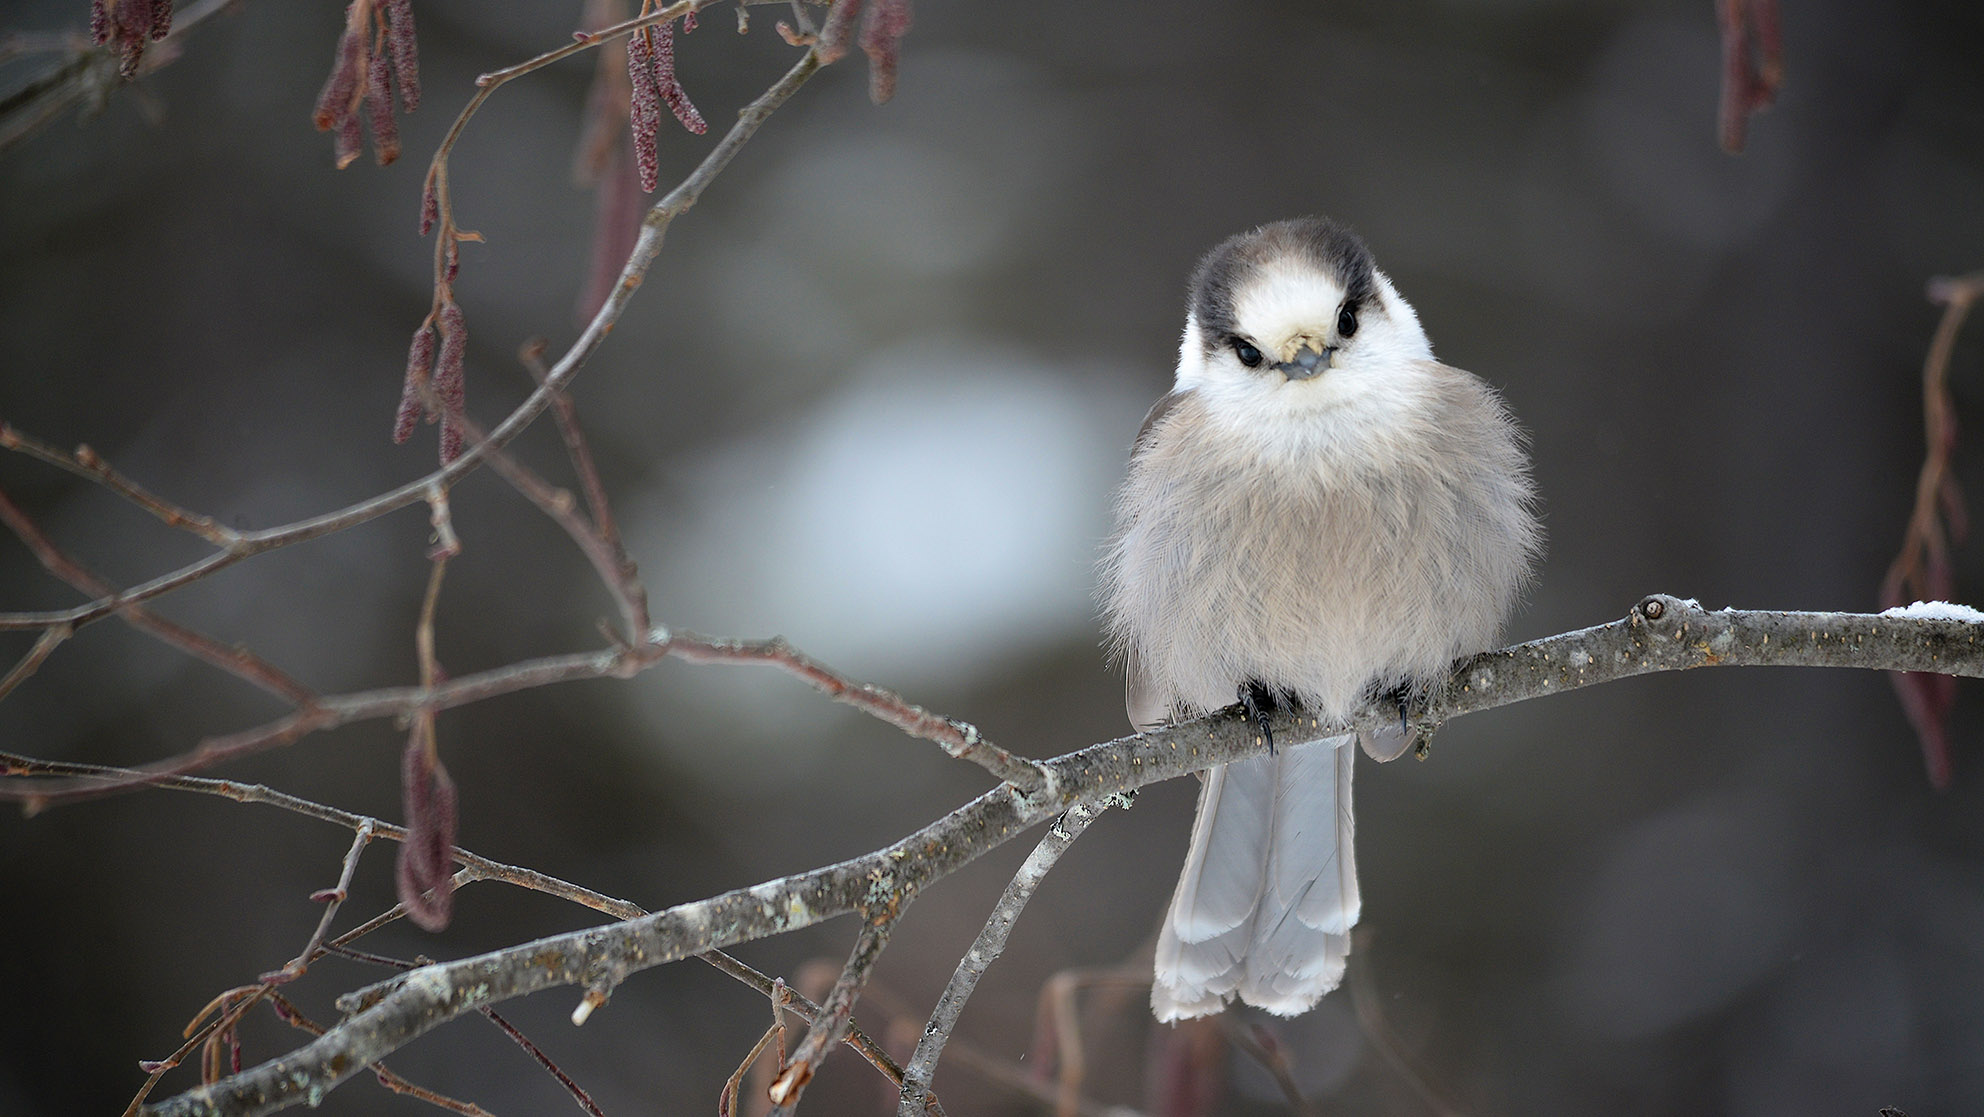 Gray Jay's rear their chicks in the dead of winter. These highly curious birds are very comfortable with human interaction.